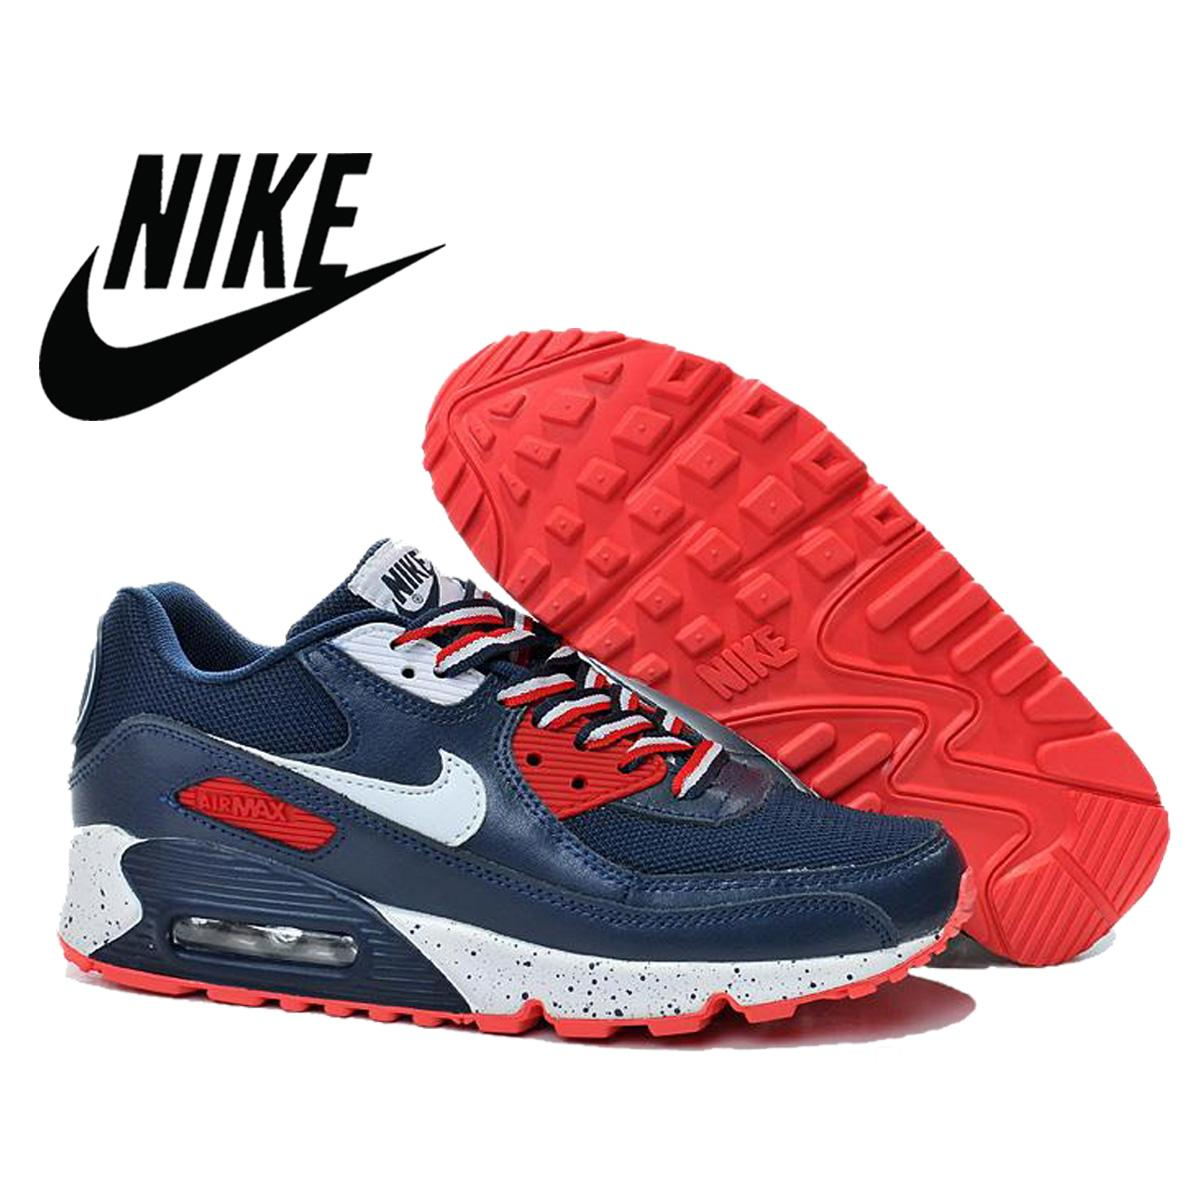 Nike Air Max 90 Men Running Shoes 2016 Discount Blue Nike Maxes Sport Shoes  Breathable Athletic